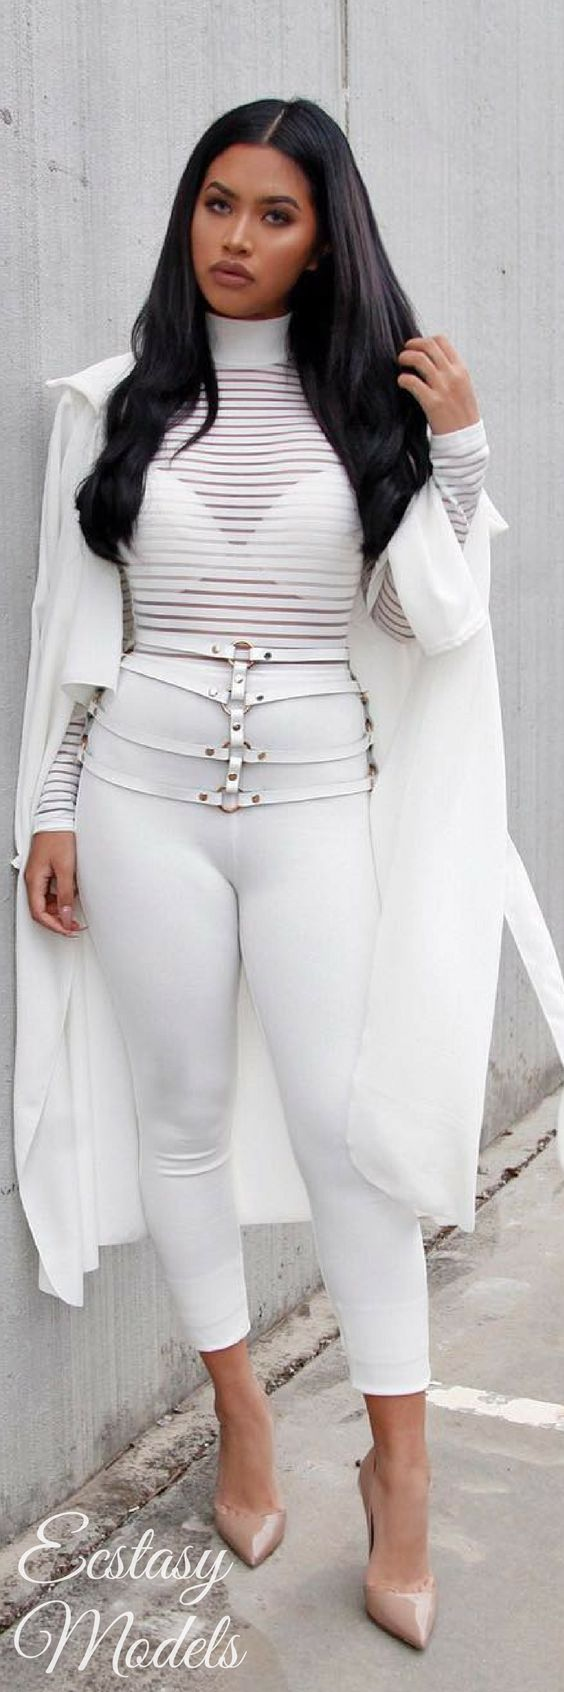 All White // Fashion Look by Stefney V.